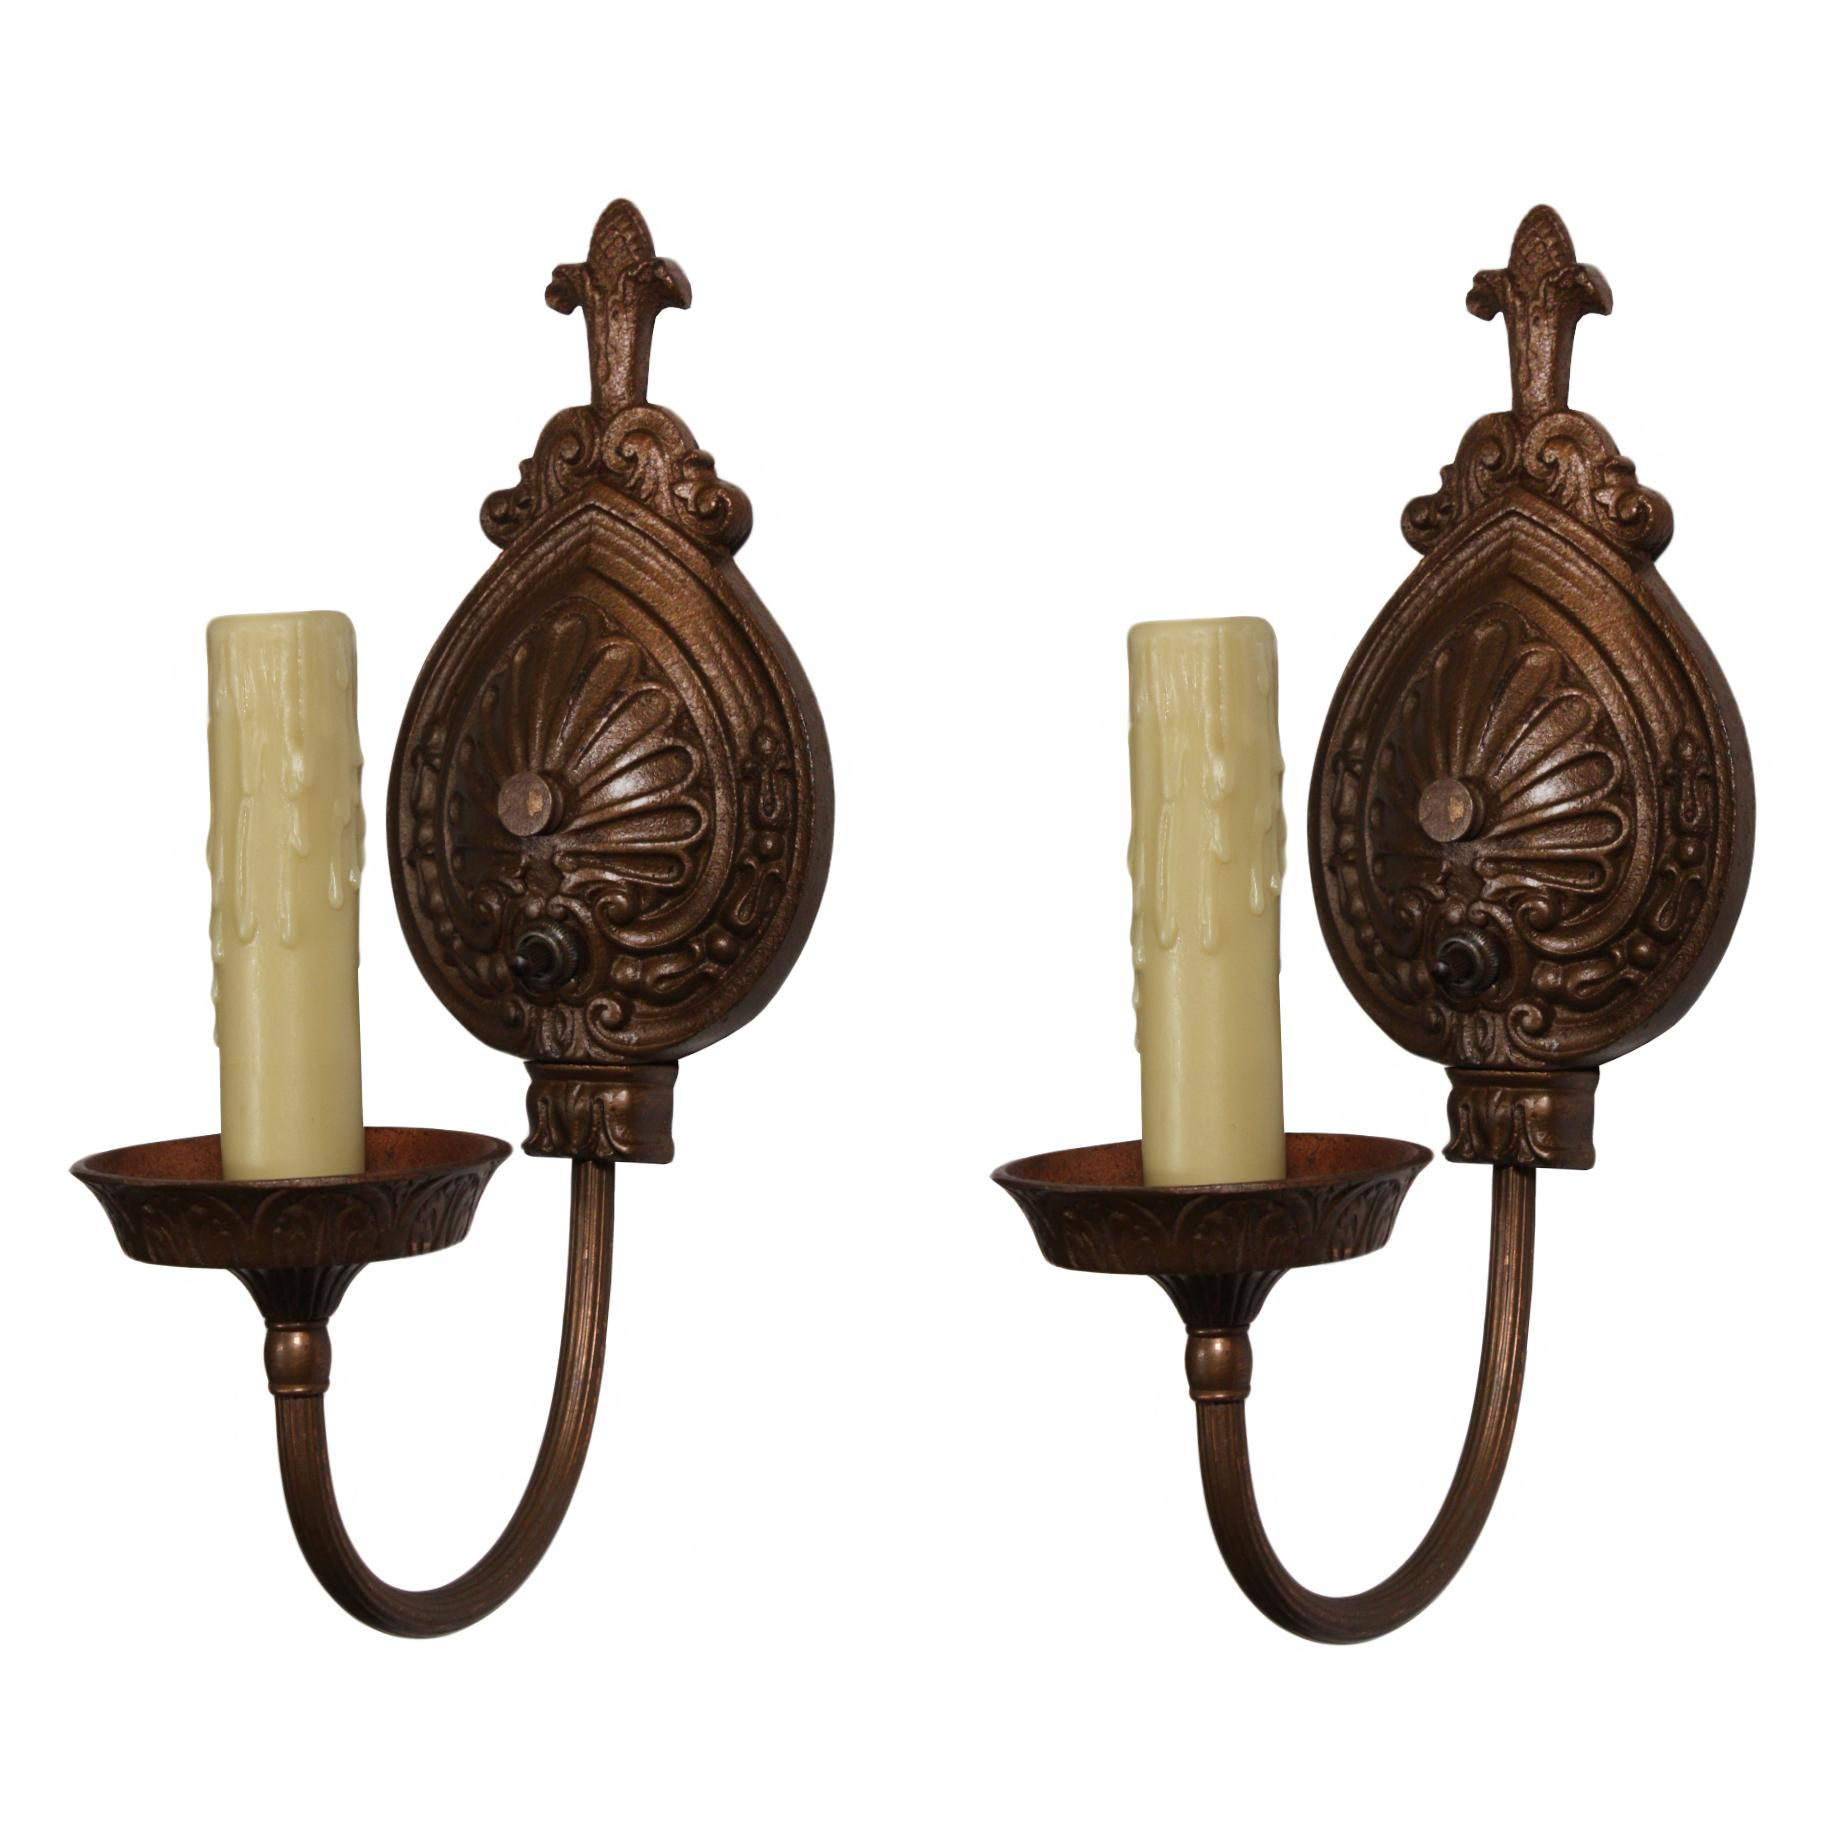 Marvelous Pair of Cast Iron Sconces by Moe Bridges